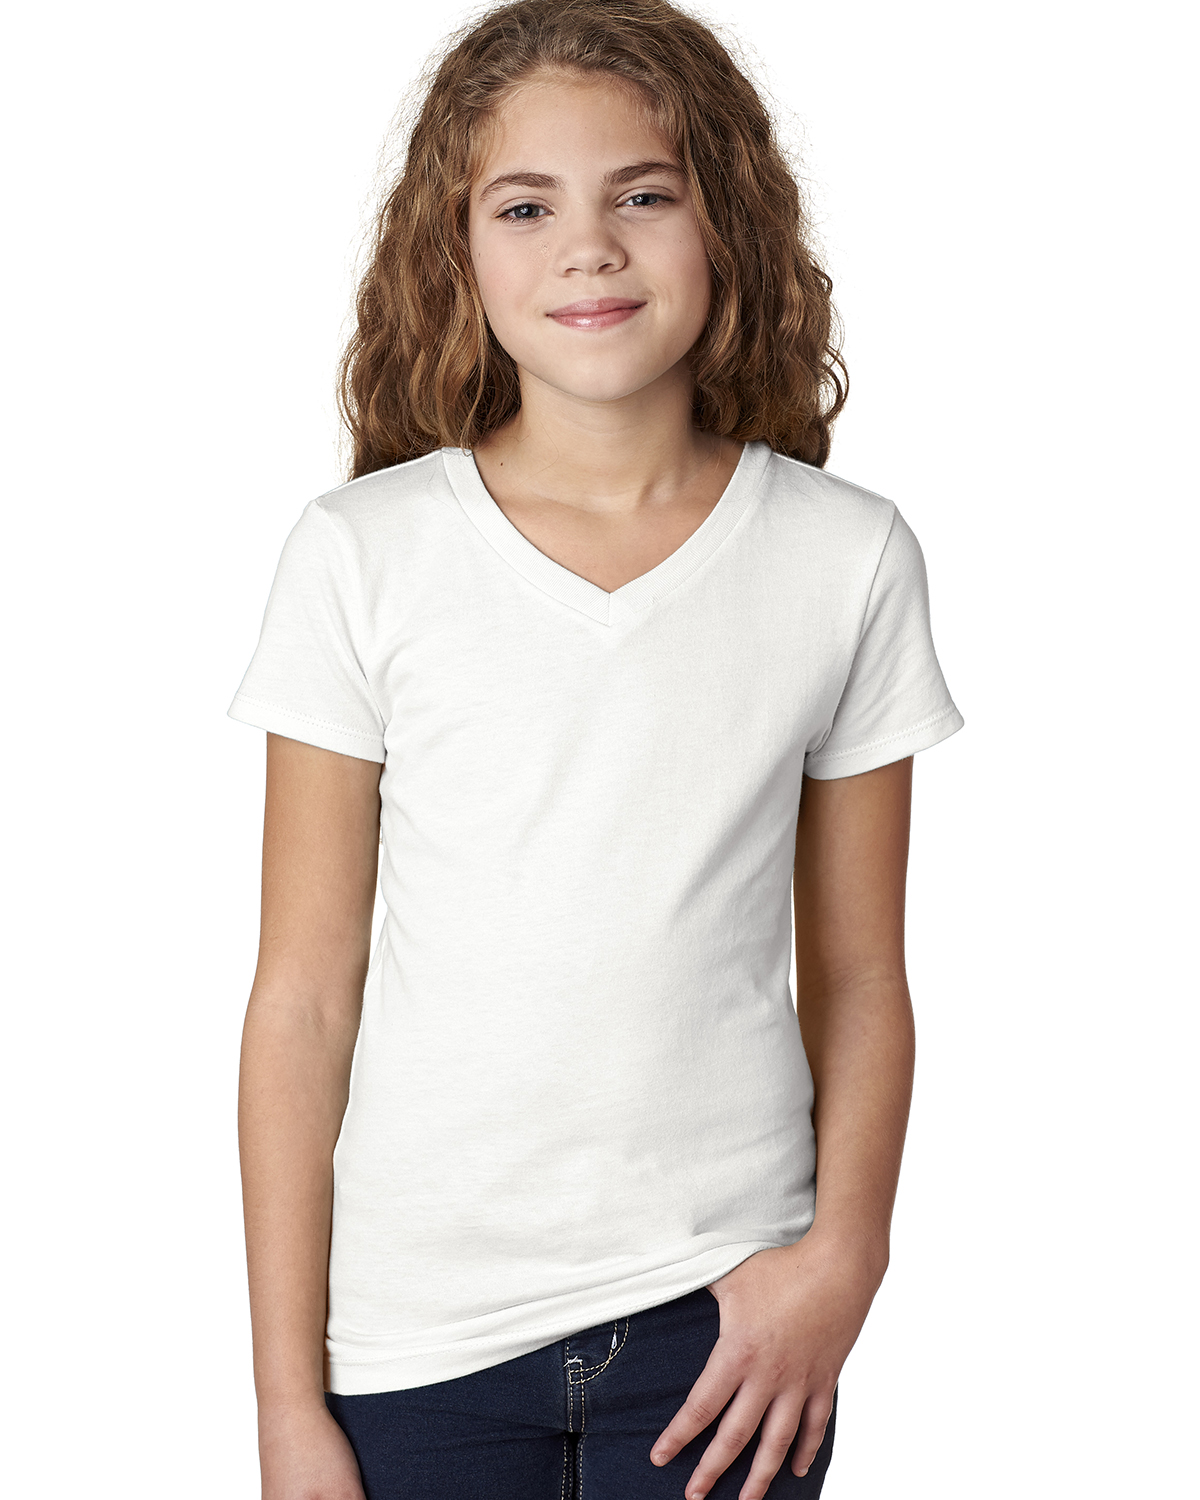 Next Level Apparel 3740 - Girls' Adorable V-Neck Tee